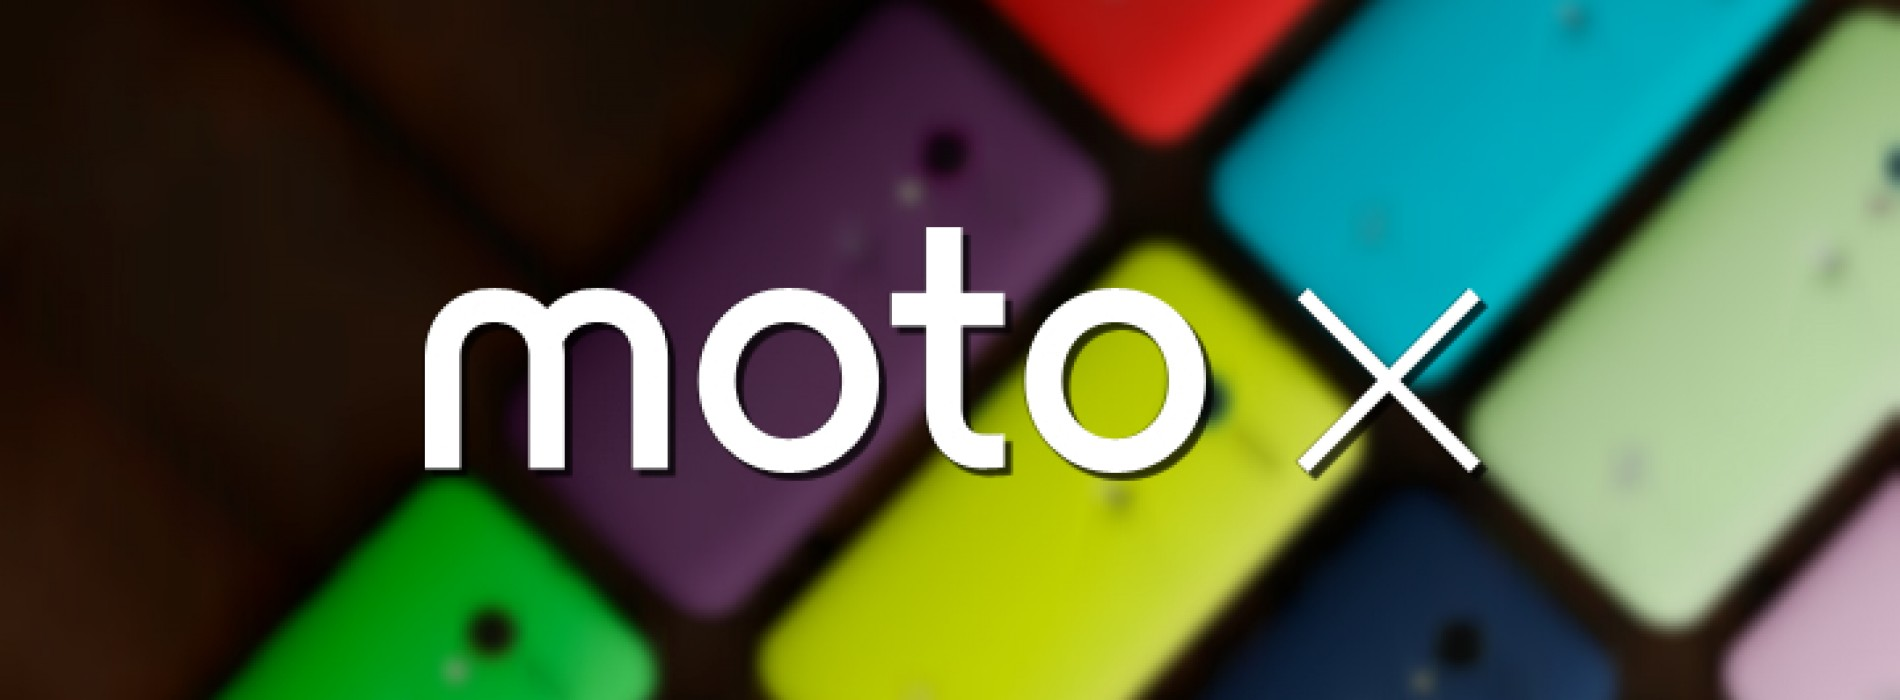 Moto X now available at all five major U.S. carriers